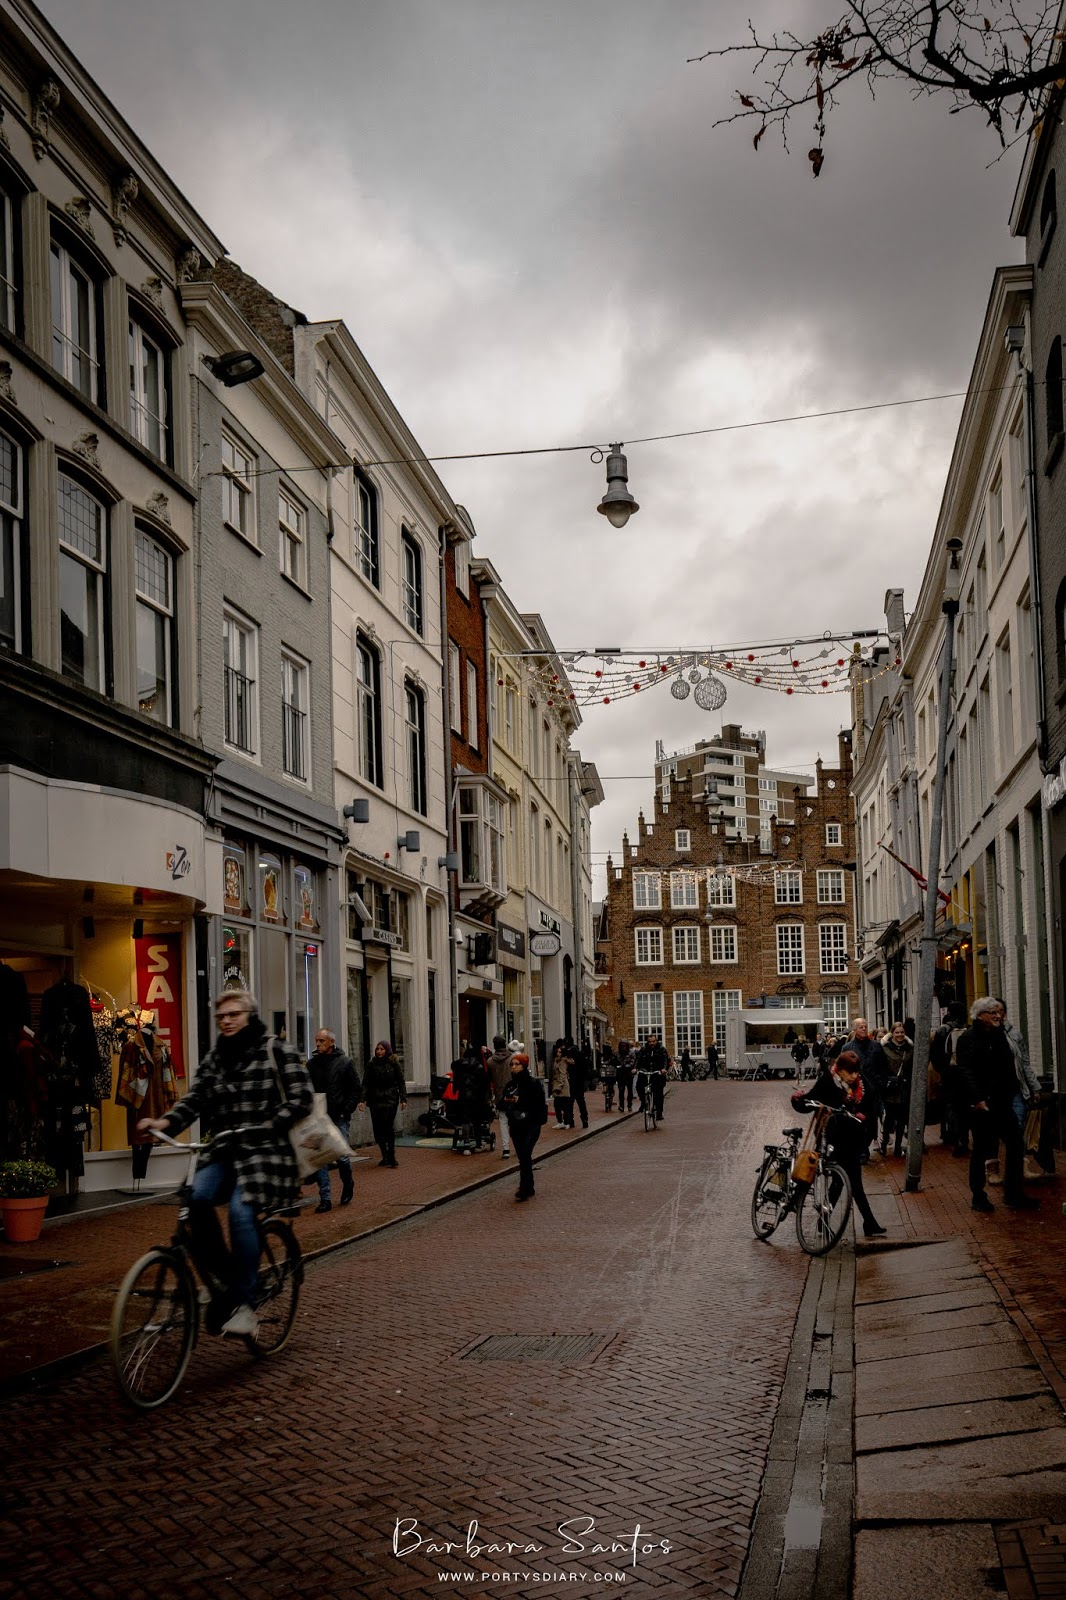 Cozy streets of Den Bosch. A weekend in Den Bosch, the Netherlands. A trip diary of how to spend a weekend in this Dutch city.